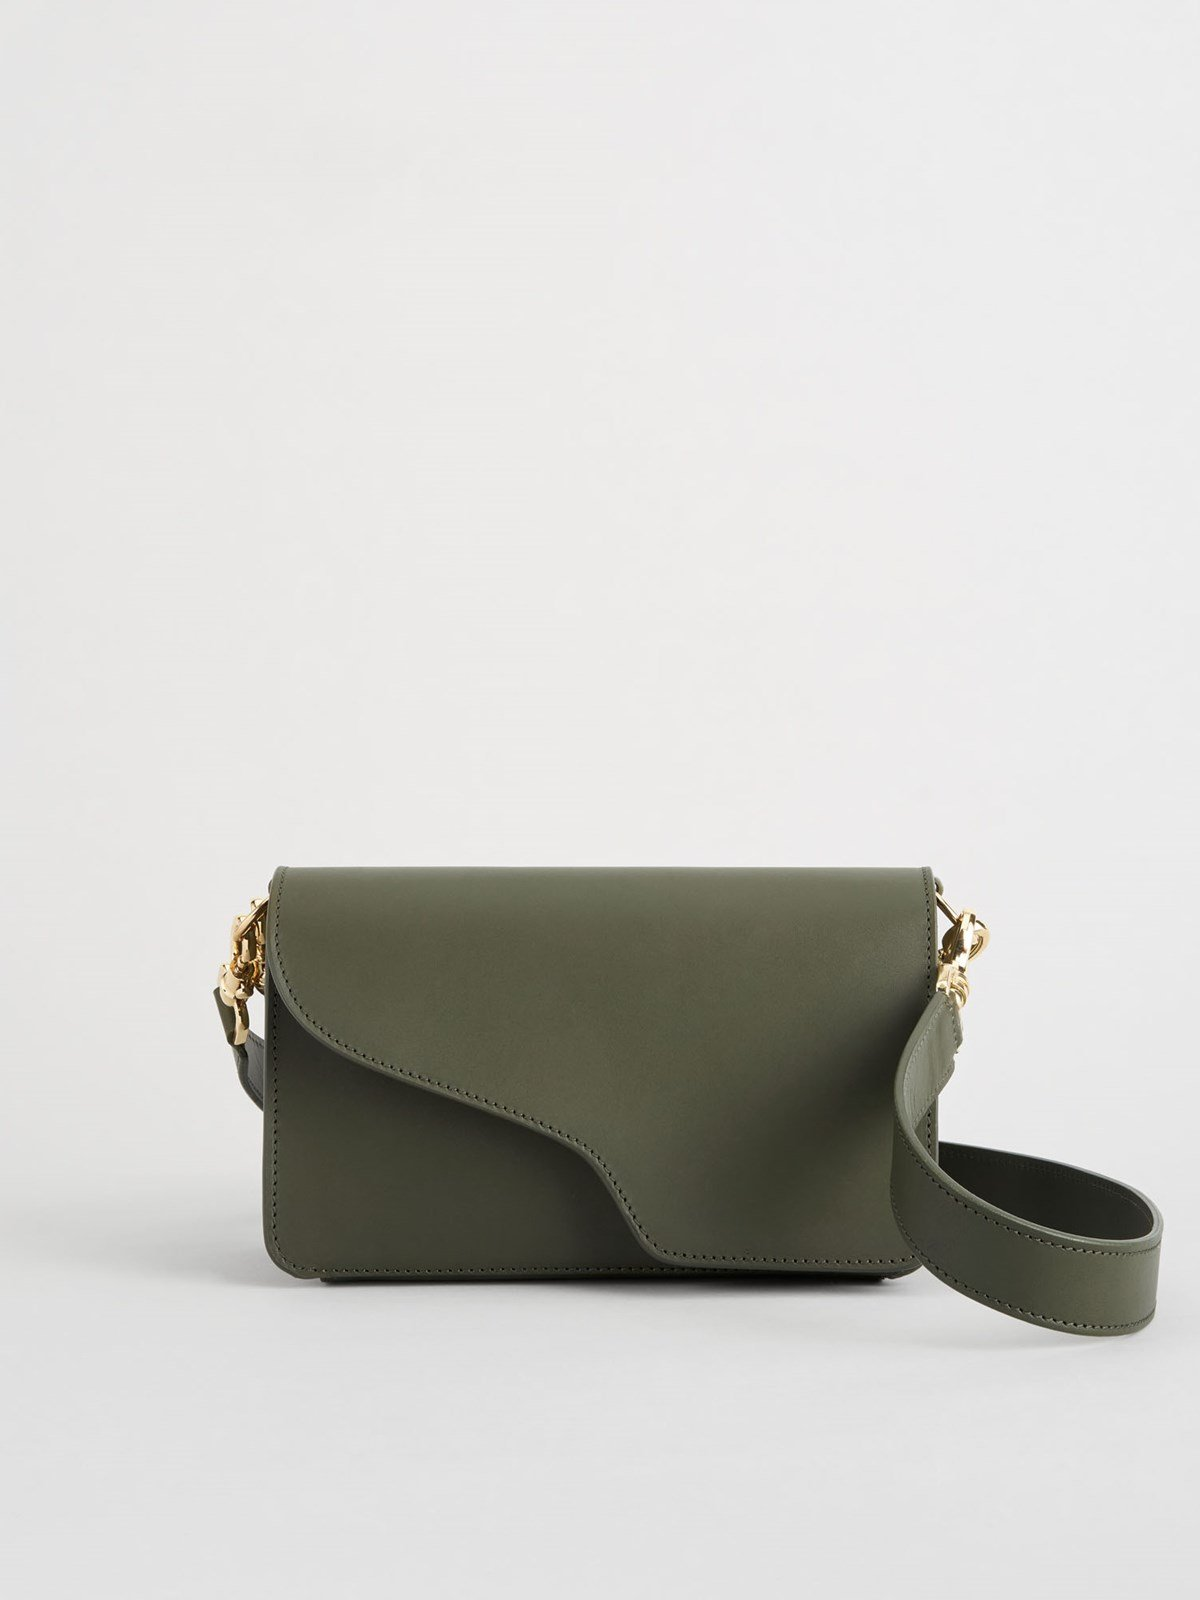 Assisi Turtle Baguette Bag